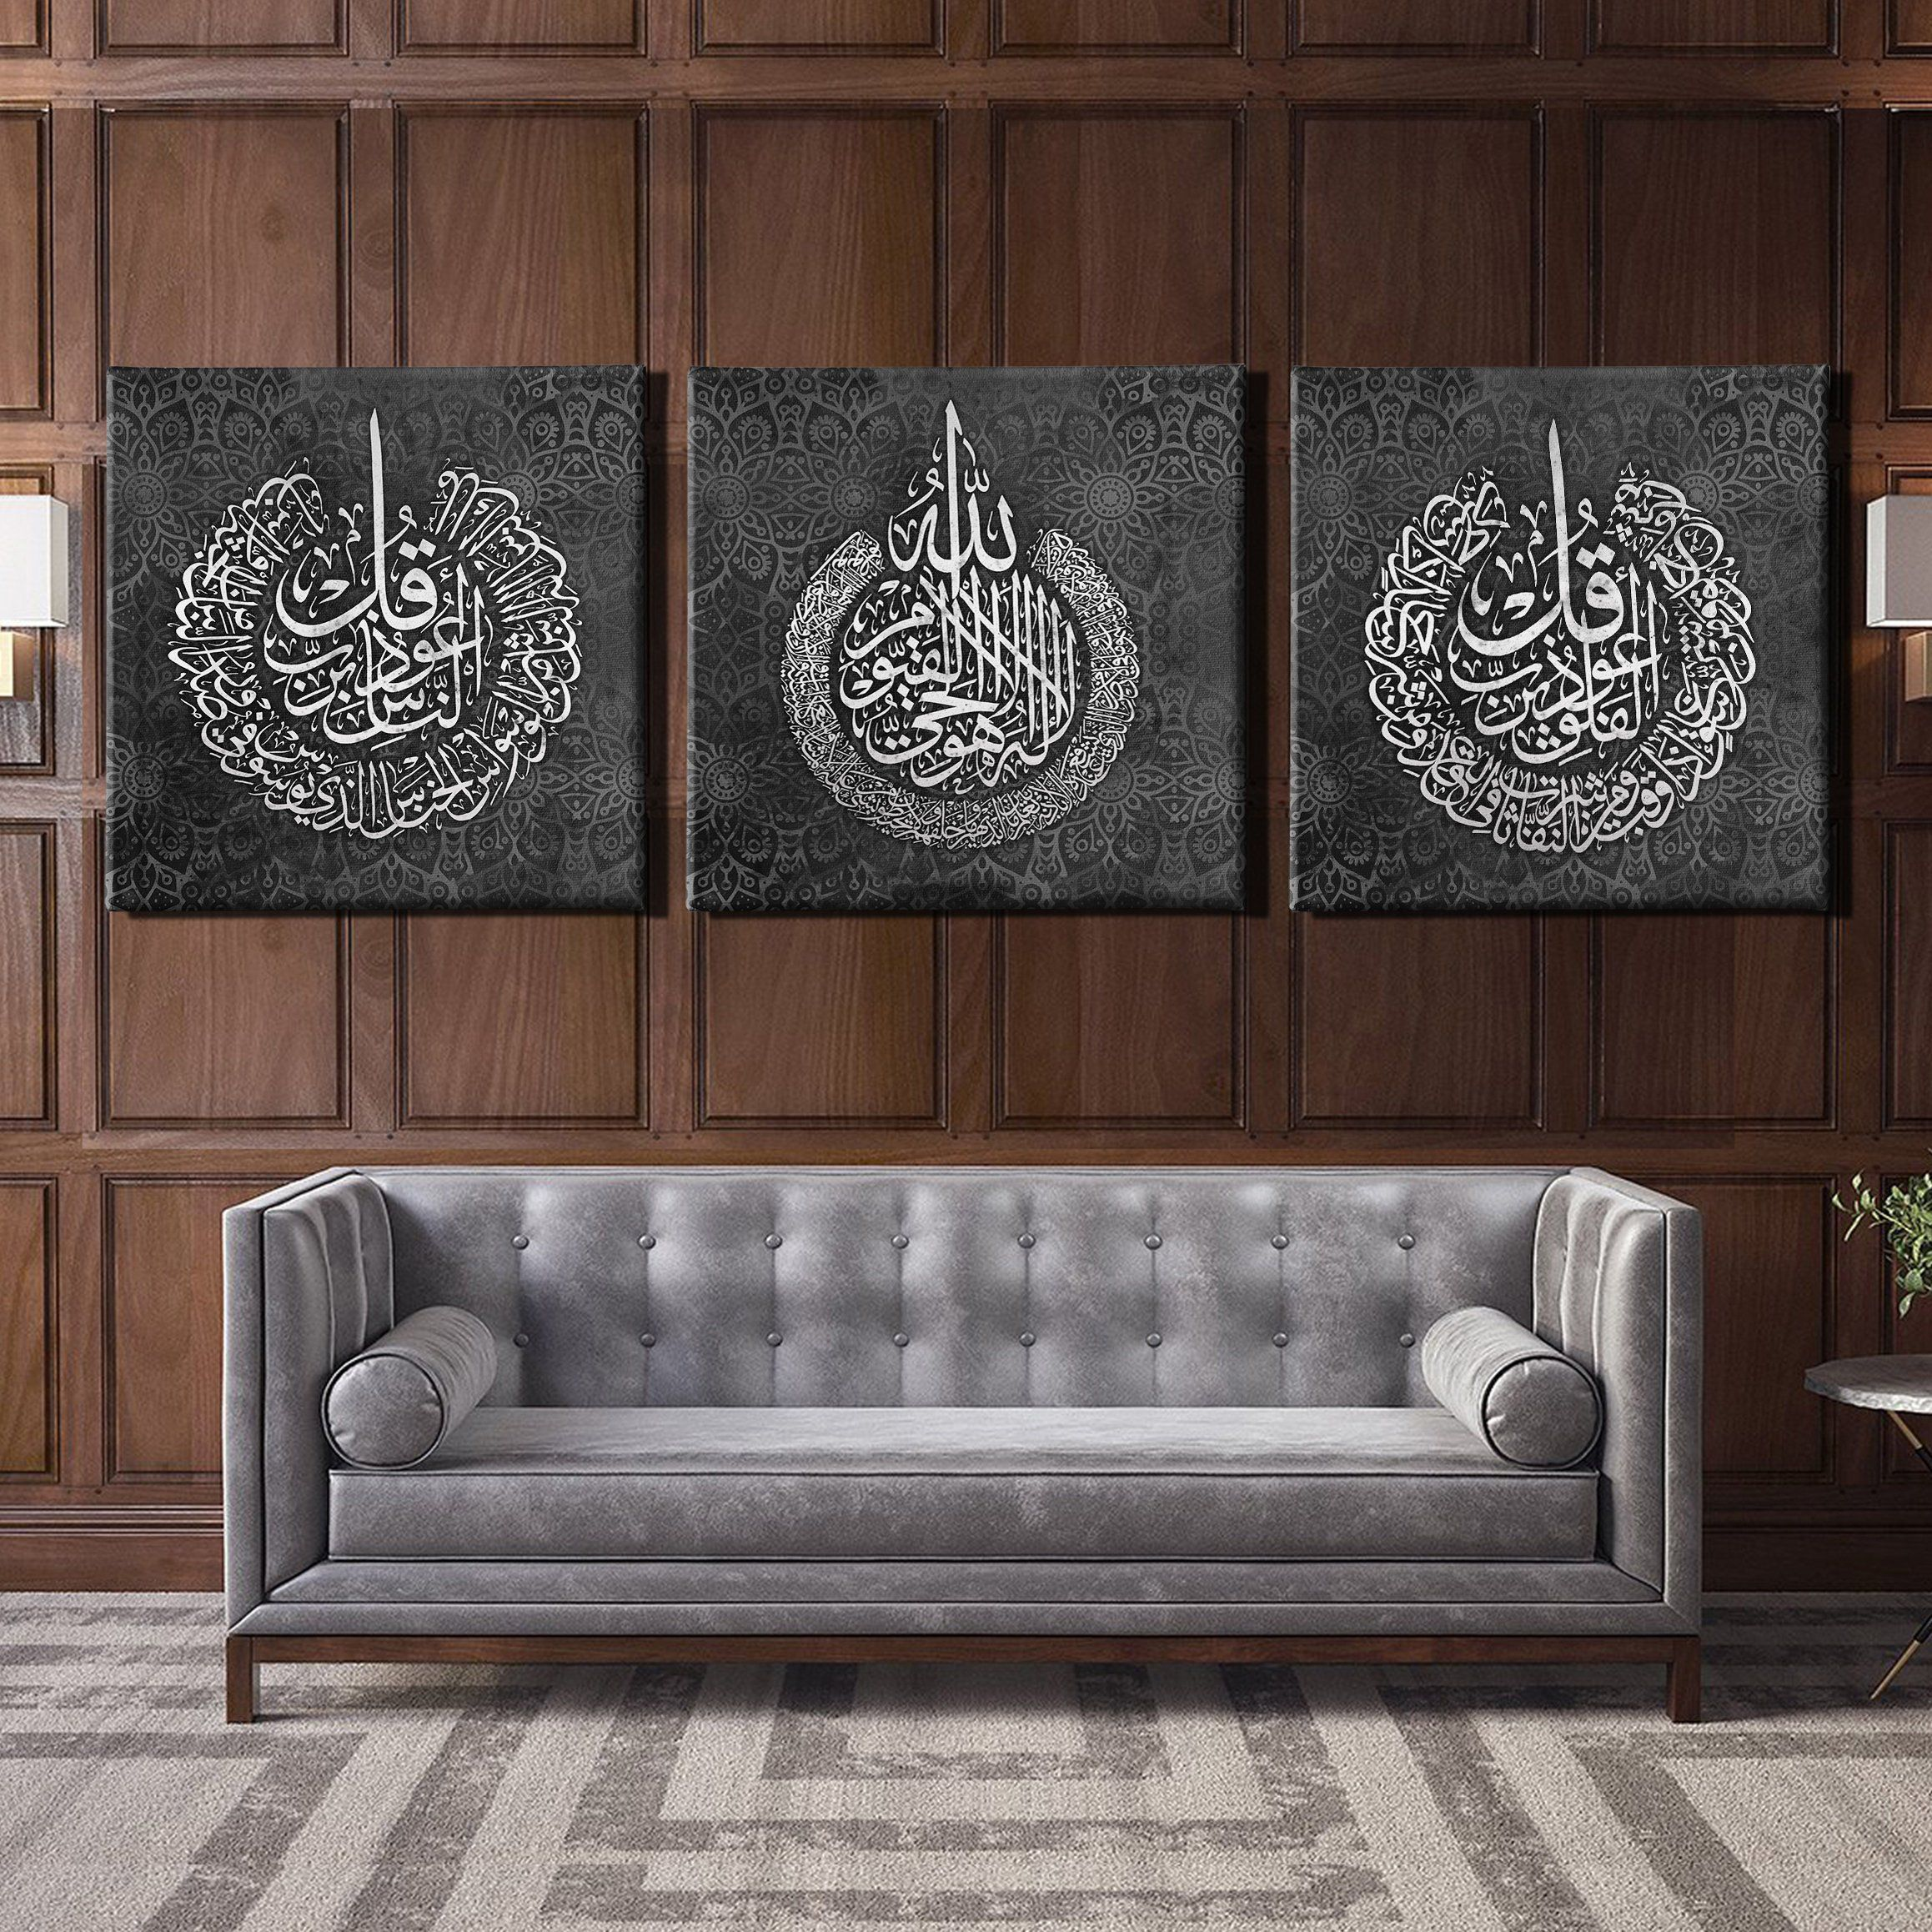 Beautiful Set Of 3 Islamic Wall Art Canvas Perfect For Modern Home